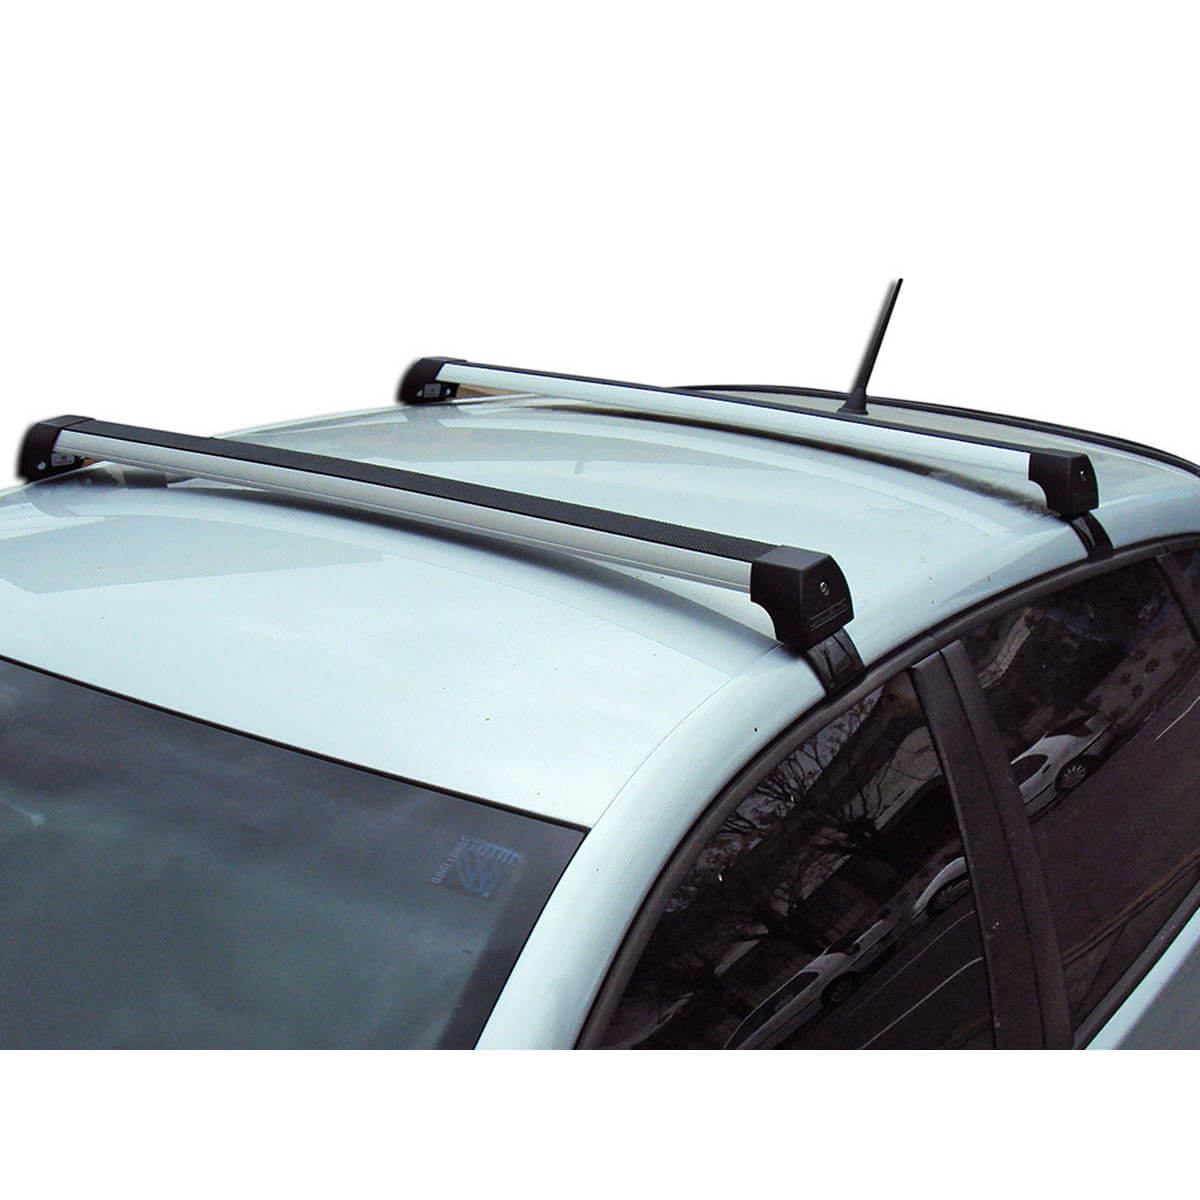 Rack de teto Polo hatch ou sedan 2003 a 2015 Long Life Sports anodizado